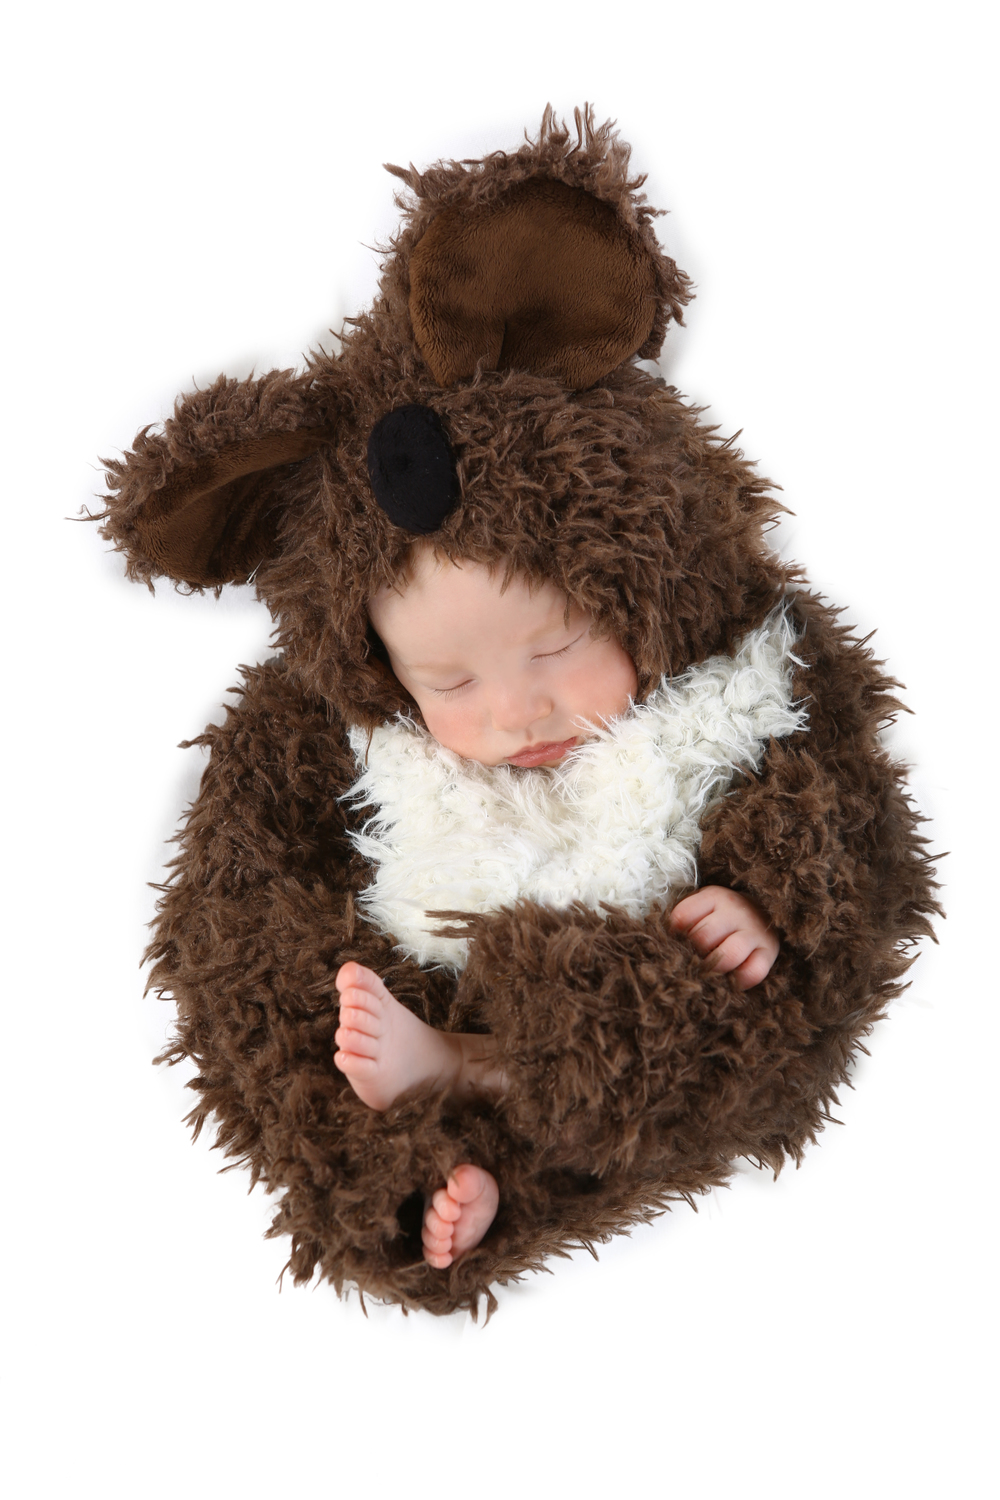 Adorable costumes for babies up to 18 months inspired by iconic Anne Geddes images.  sc 1 st  Anne Geddes & Dress Up u2014 Anne Geddes